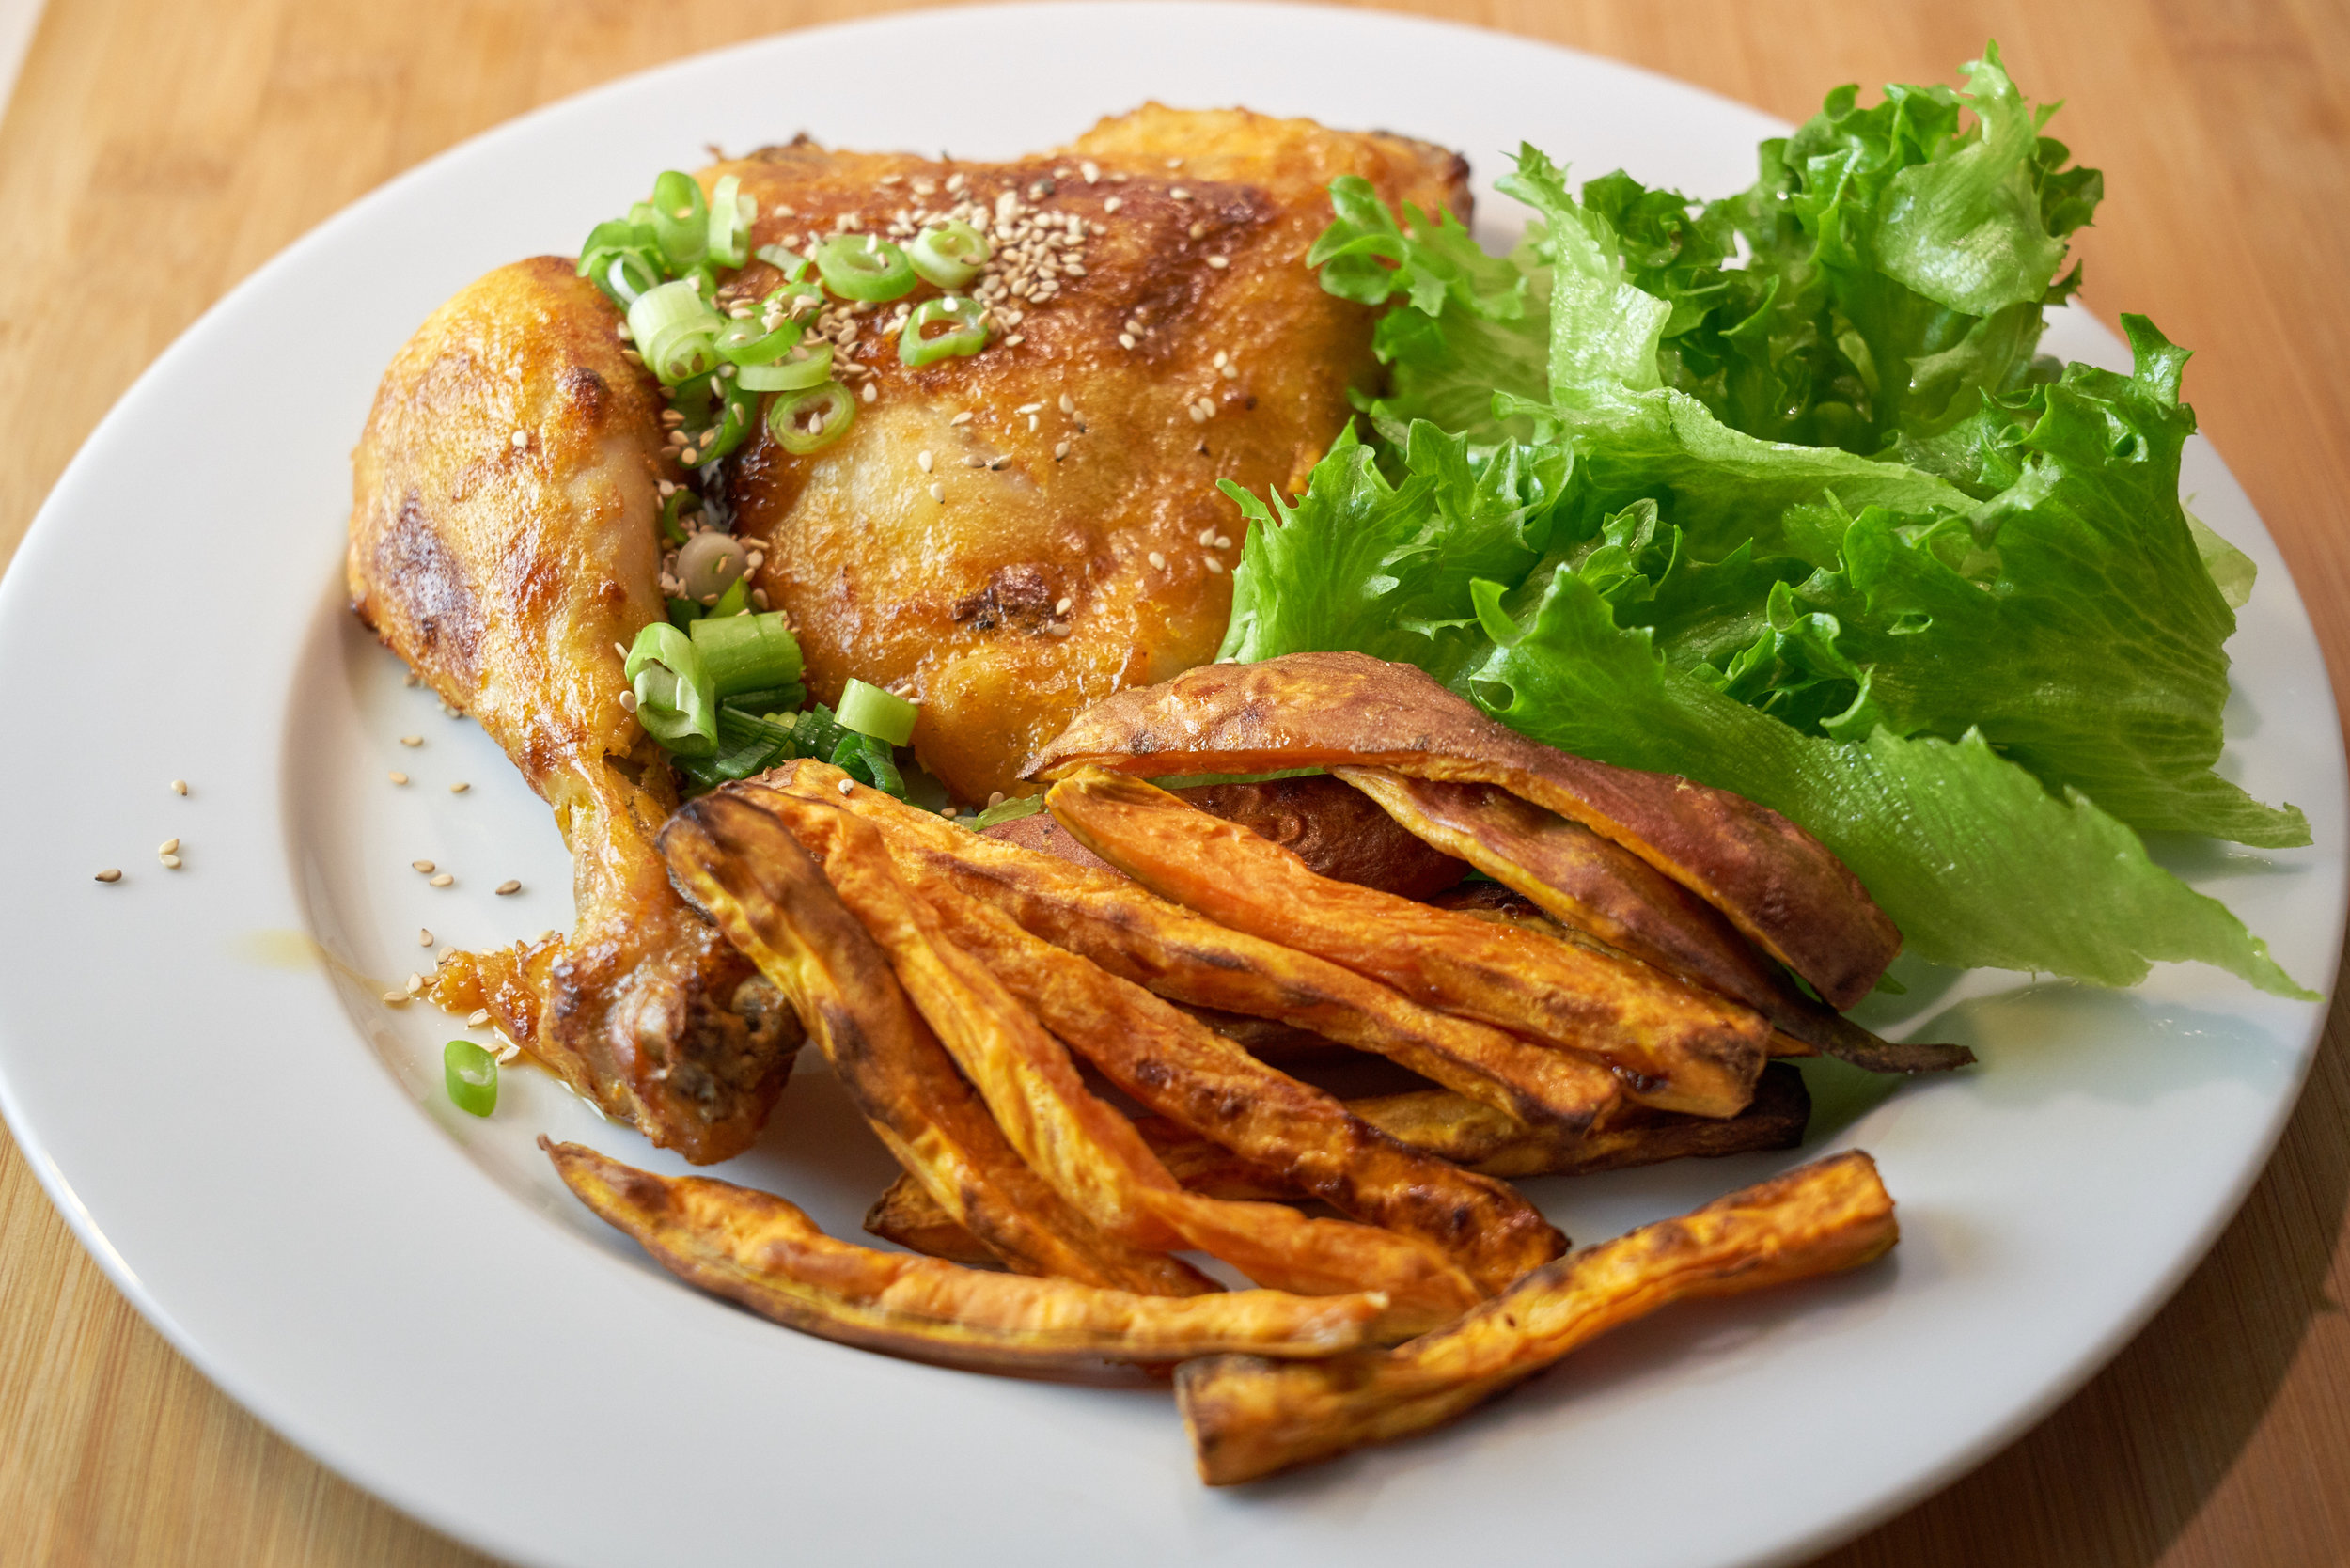 Crispy Sriracha Chicken with Homemade Mayo, Oven Baked Sweet Potato Fries and Salad | In Carina's Kitchen